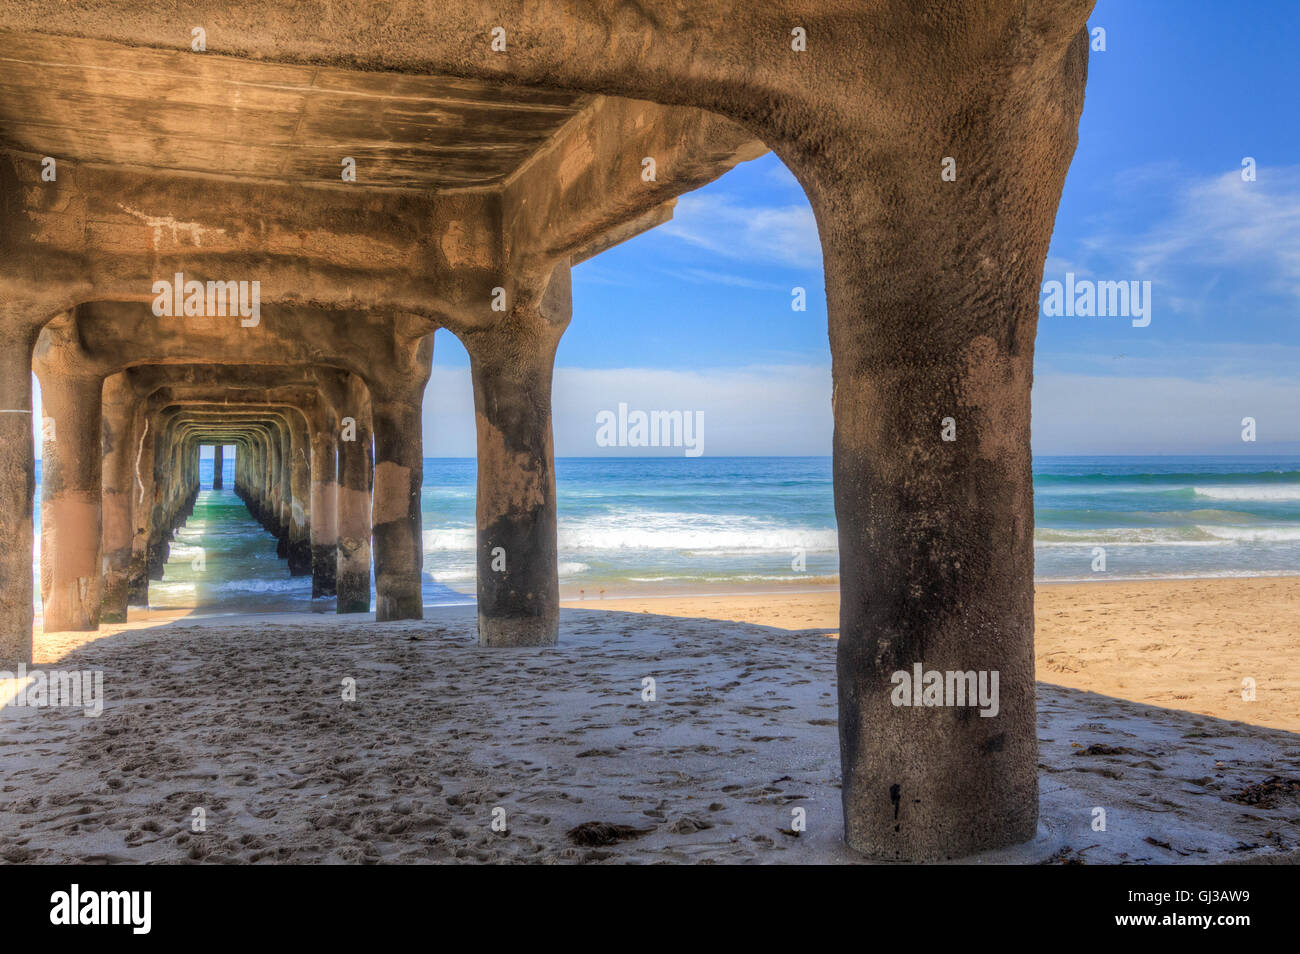 Manhattan Beach Pier, California, USA - Stock Image